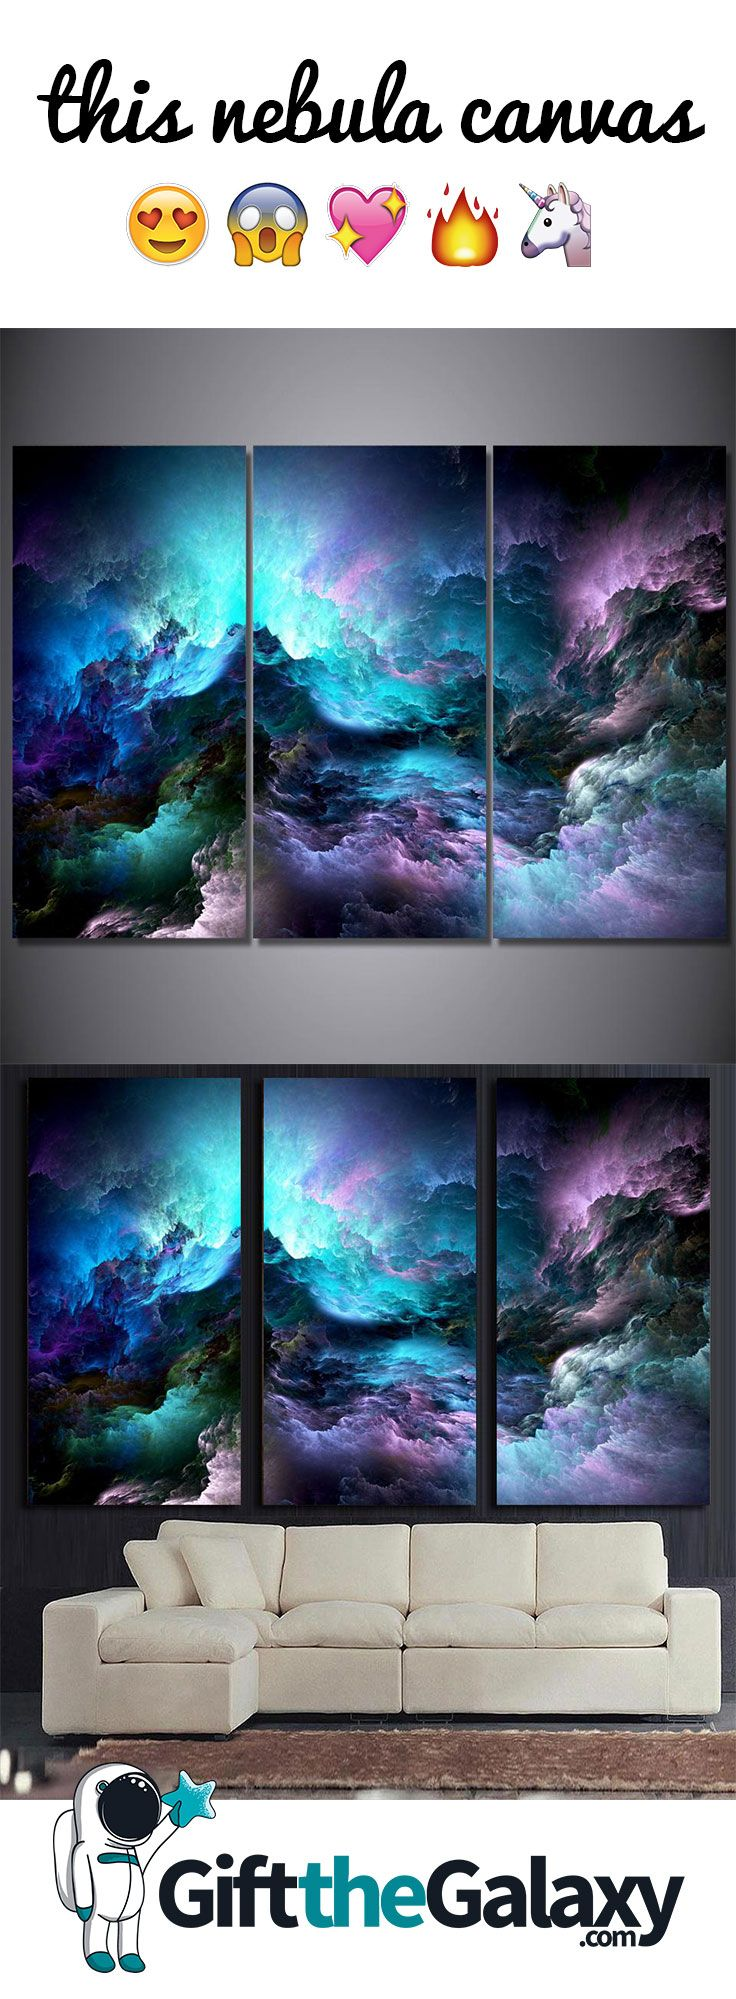 This stunning Nebula Canvas is the perfect addition to a living room, bedroom or any wall space. Shop the best gifts in the galaxy at GiftTheGalaxy.com! // Space Canvas Art Painting Printed Poster Space Themed Bedroom Décor Ideas Interior Design Unique Gift Space Gifts Space Gift Idea